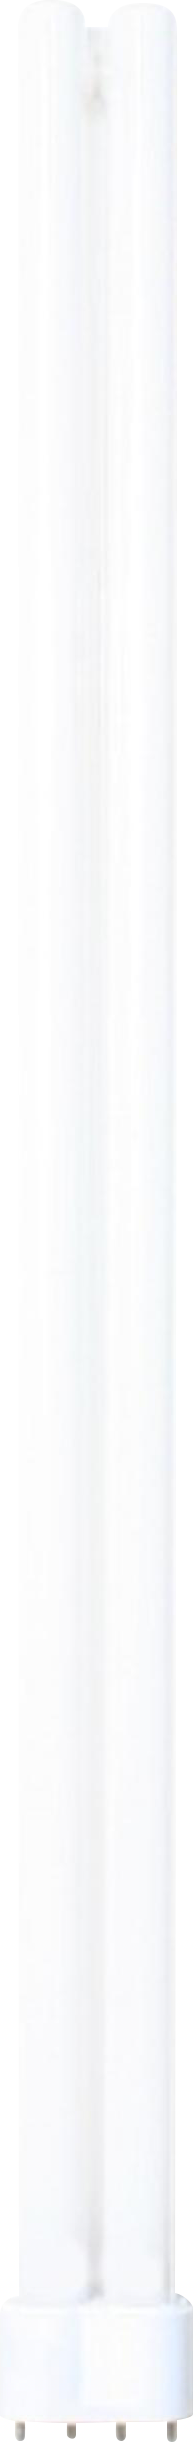 Knightsbridge PL 55W LAMP 4 PIN - COOL WHITE